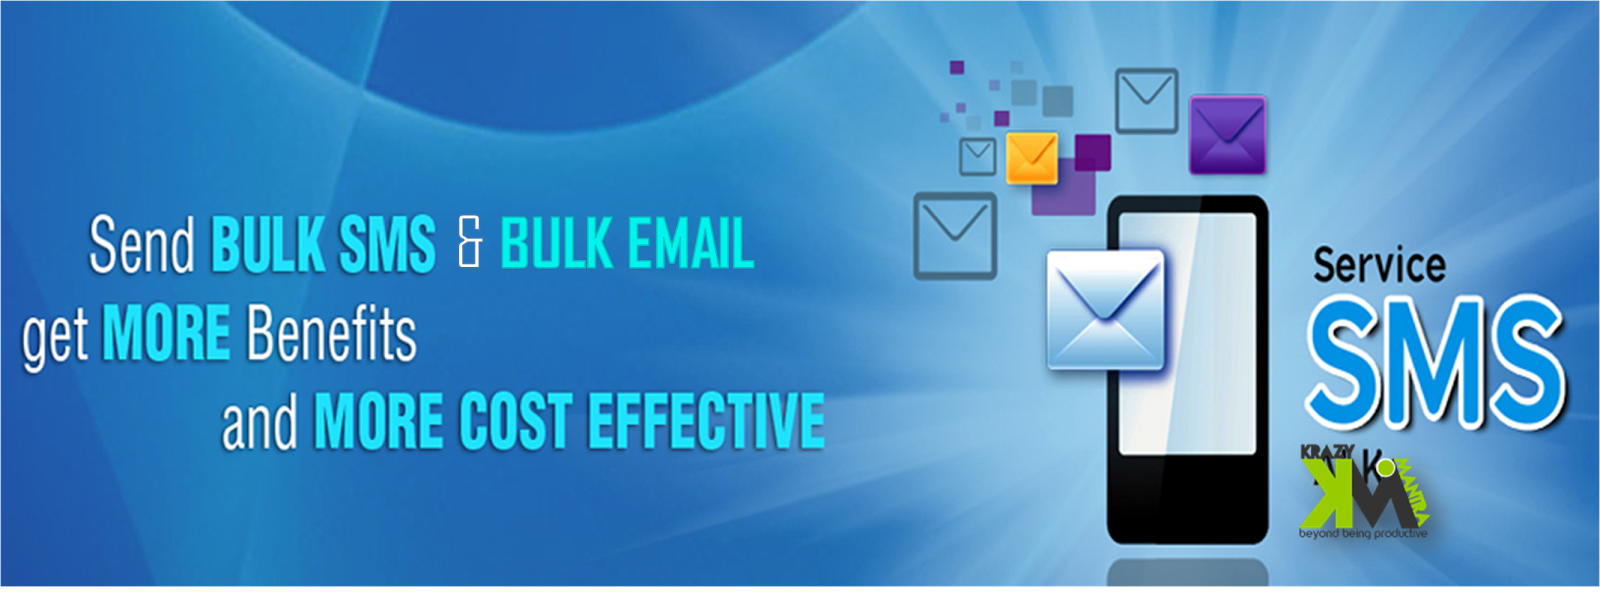 Bulk SMS and Bulk Email Service a New Marketing Strategy for